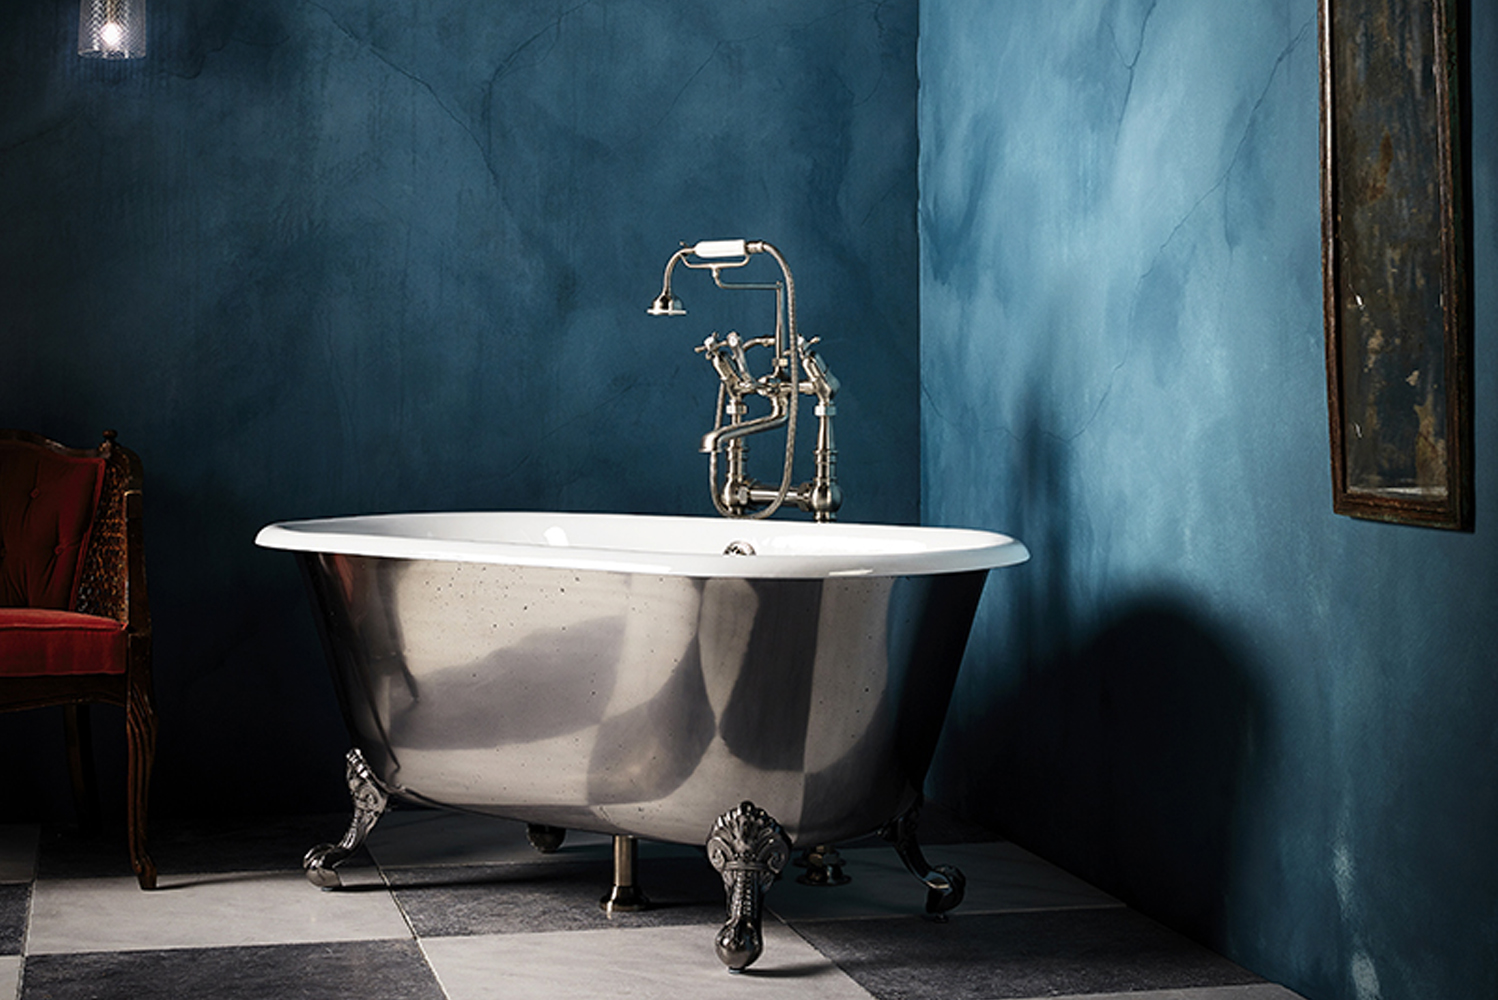 Drummonds introduces the Ashburn bathtub, which comes in four bespoke finish options.